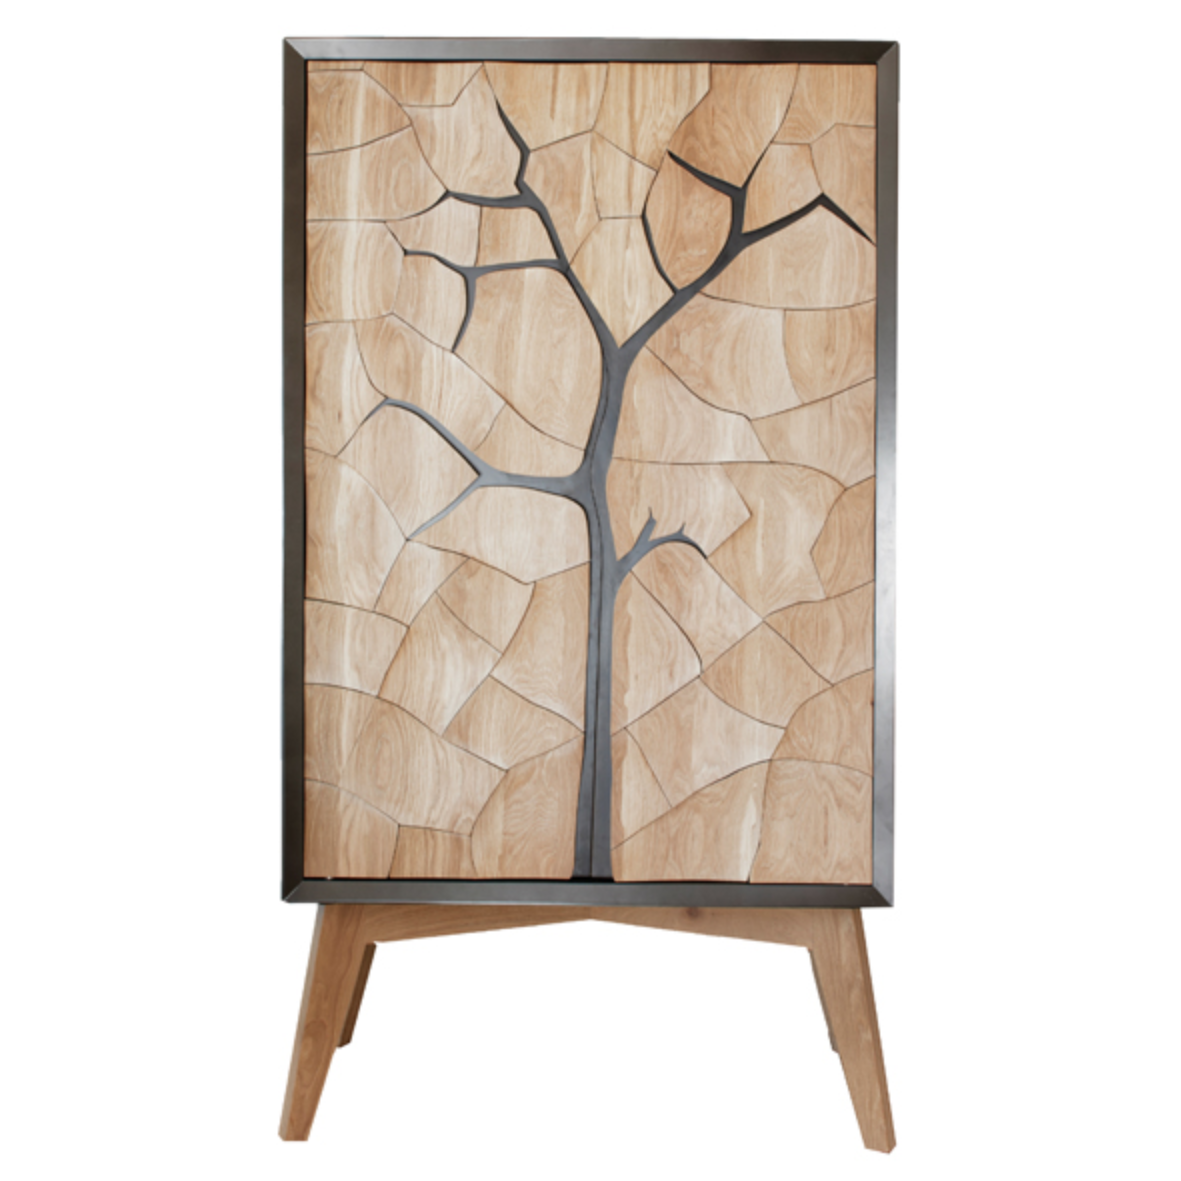 Mud Drinks Cabinet by Meyer Von Wielligh. Inspired by the cracked mud plates found on the dry riverbed of Sossusvlei in Namibia, Abrie's homeland. The metal or timber surround of the cabinet is cleverly extended into a silhouette of the branches of a tree that is also recessed handle grips for the doors.